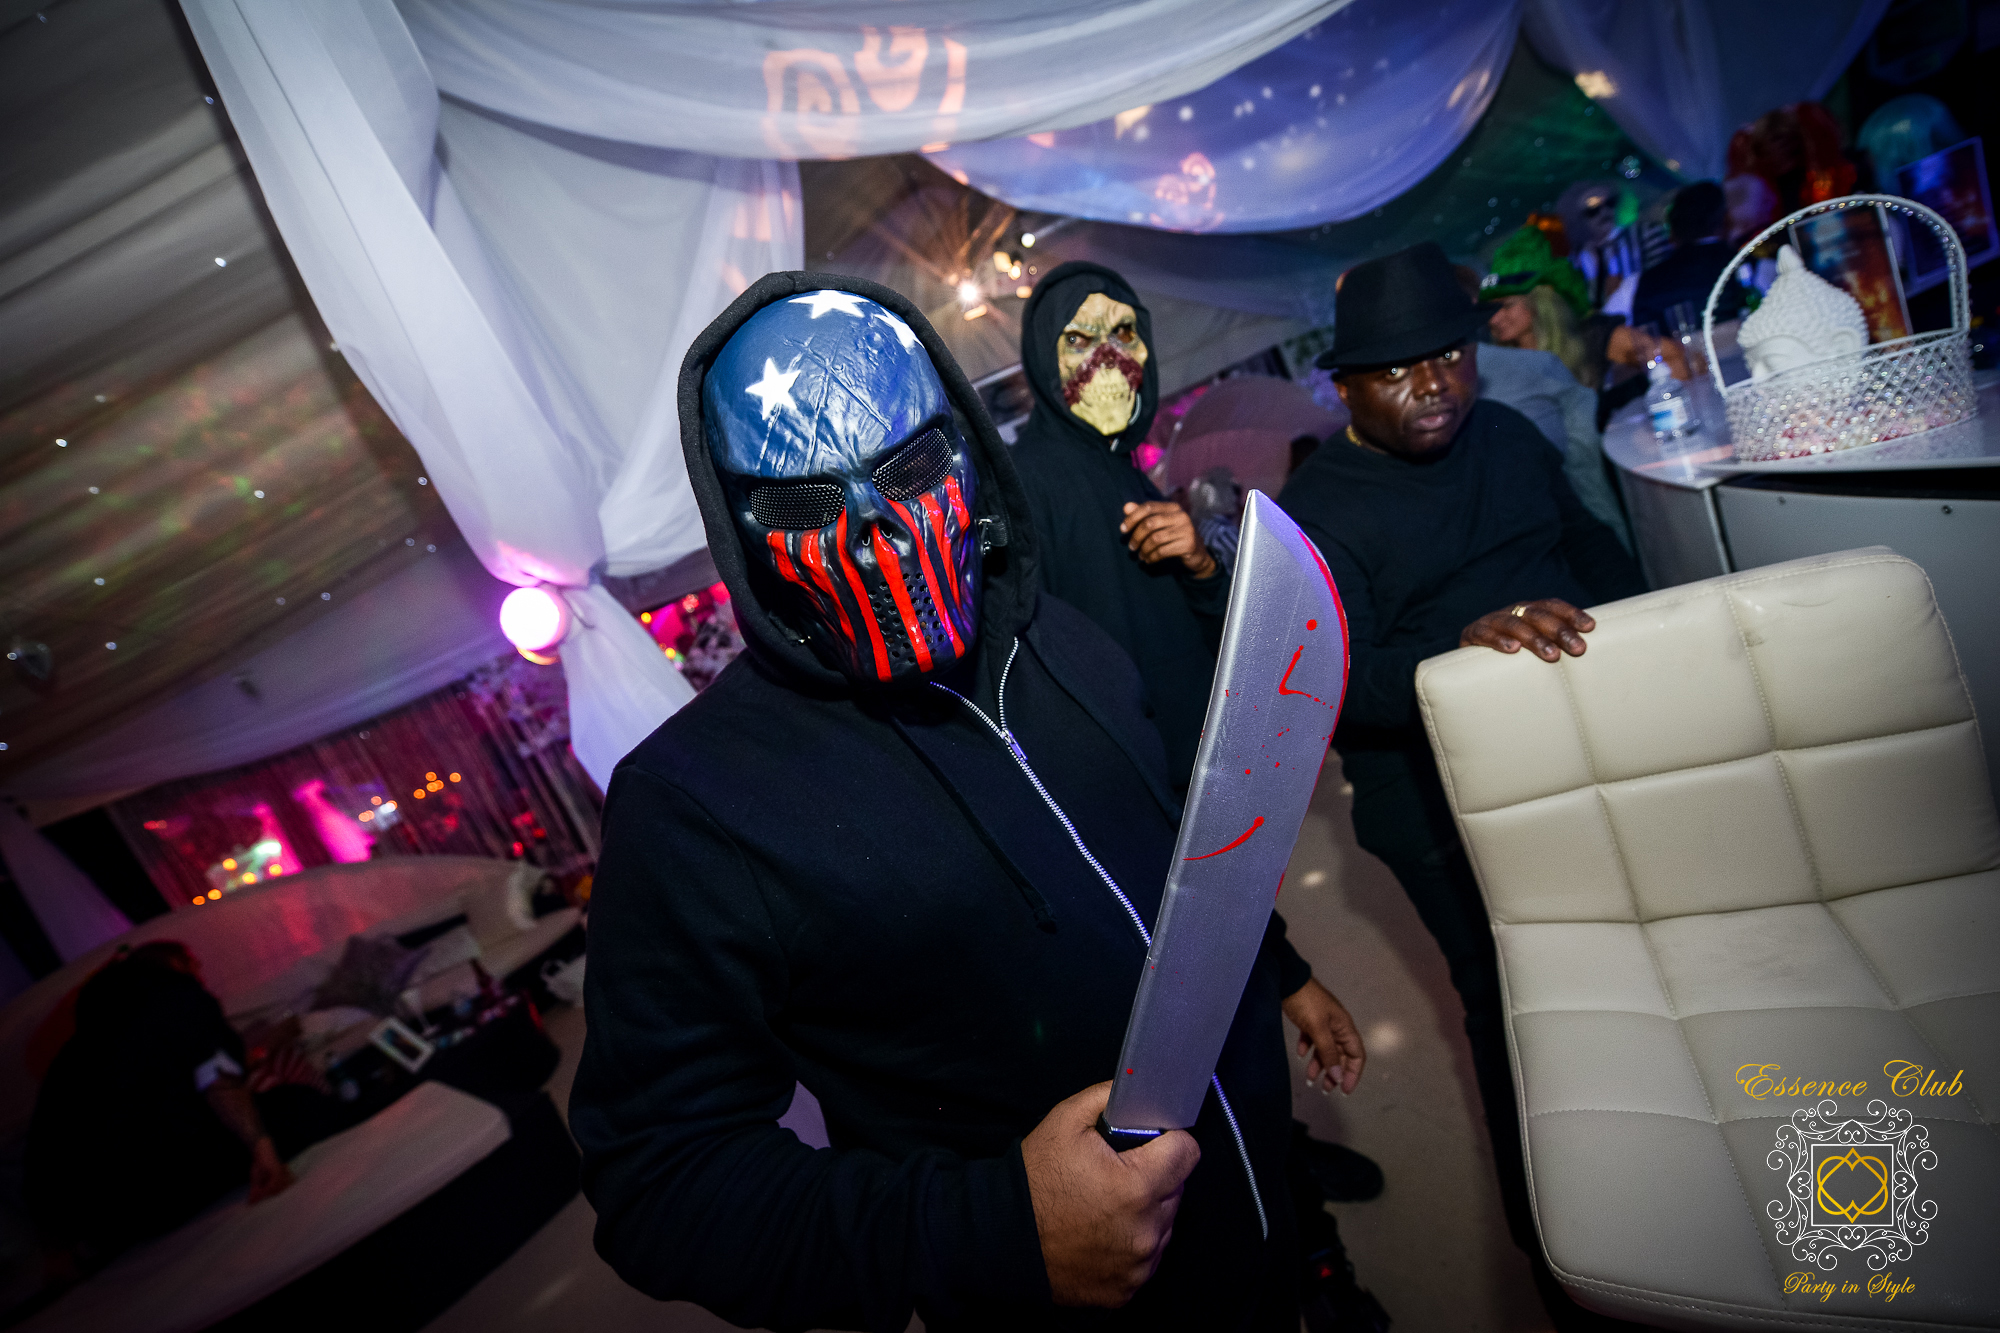 Essence club events heaven and hell